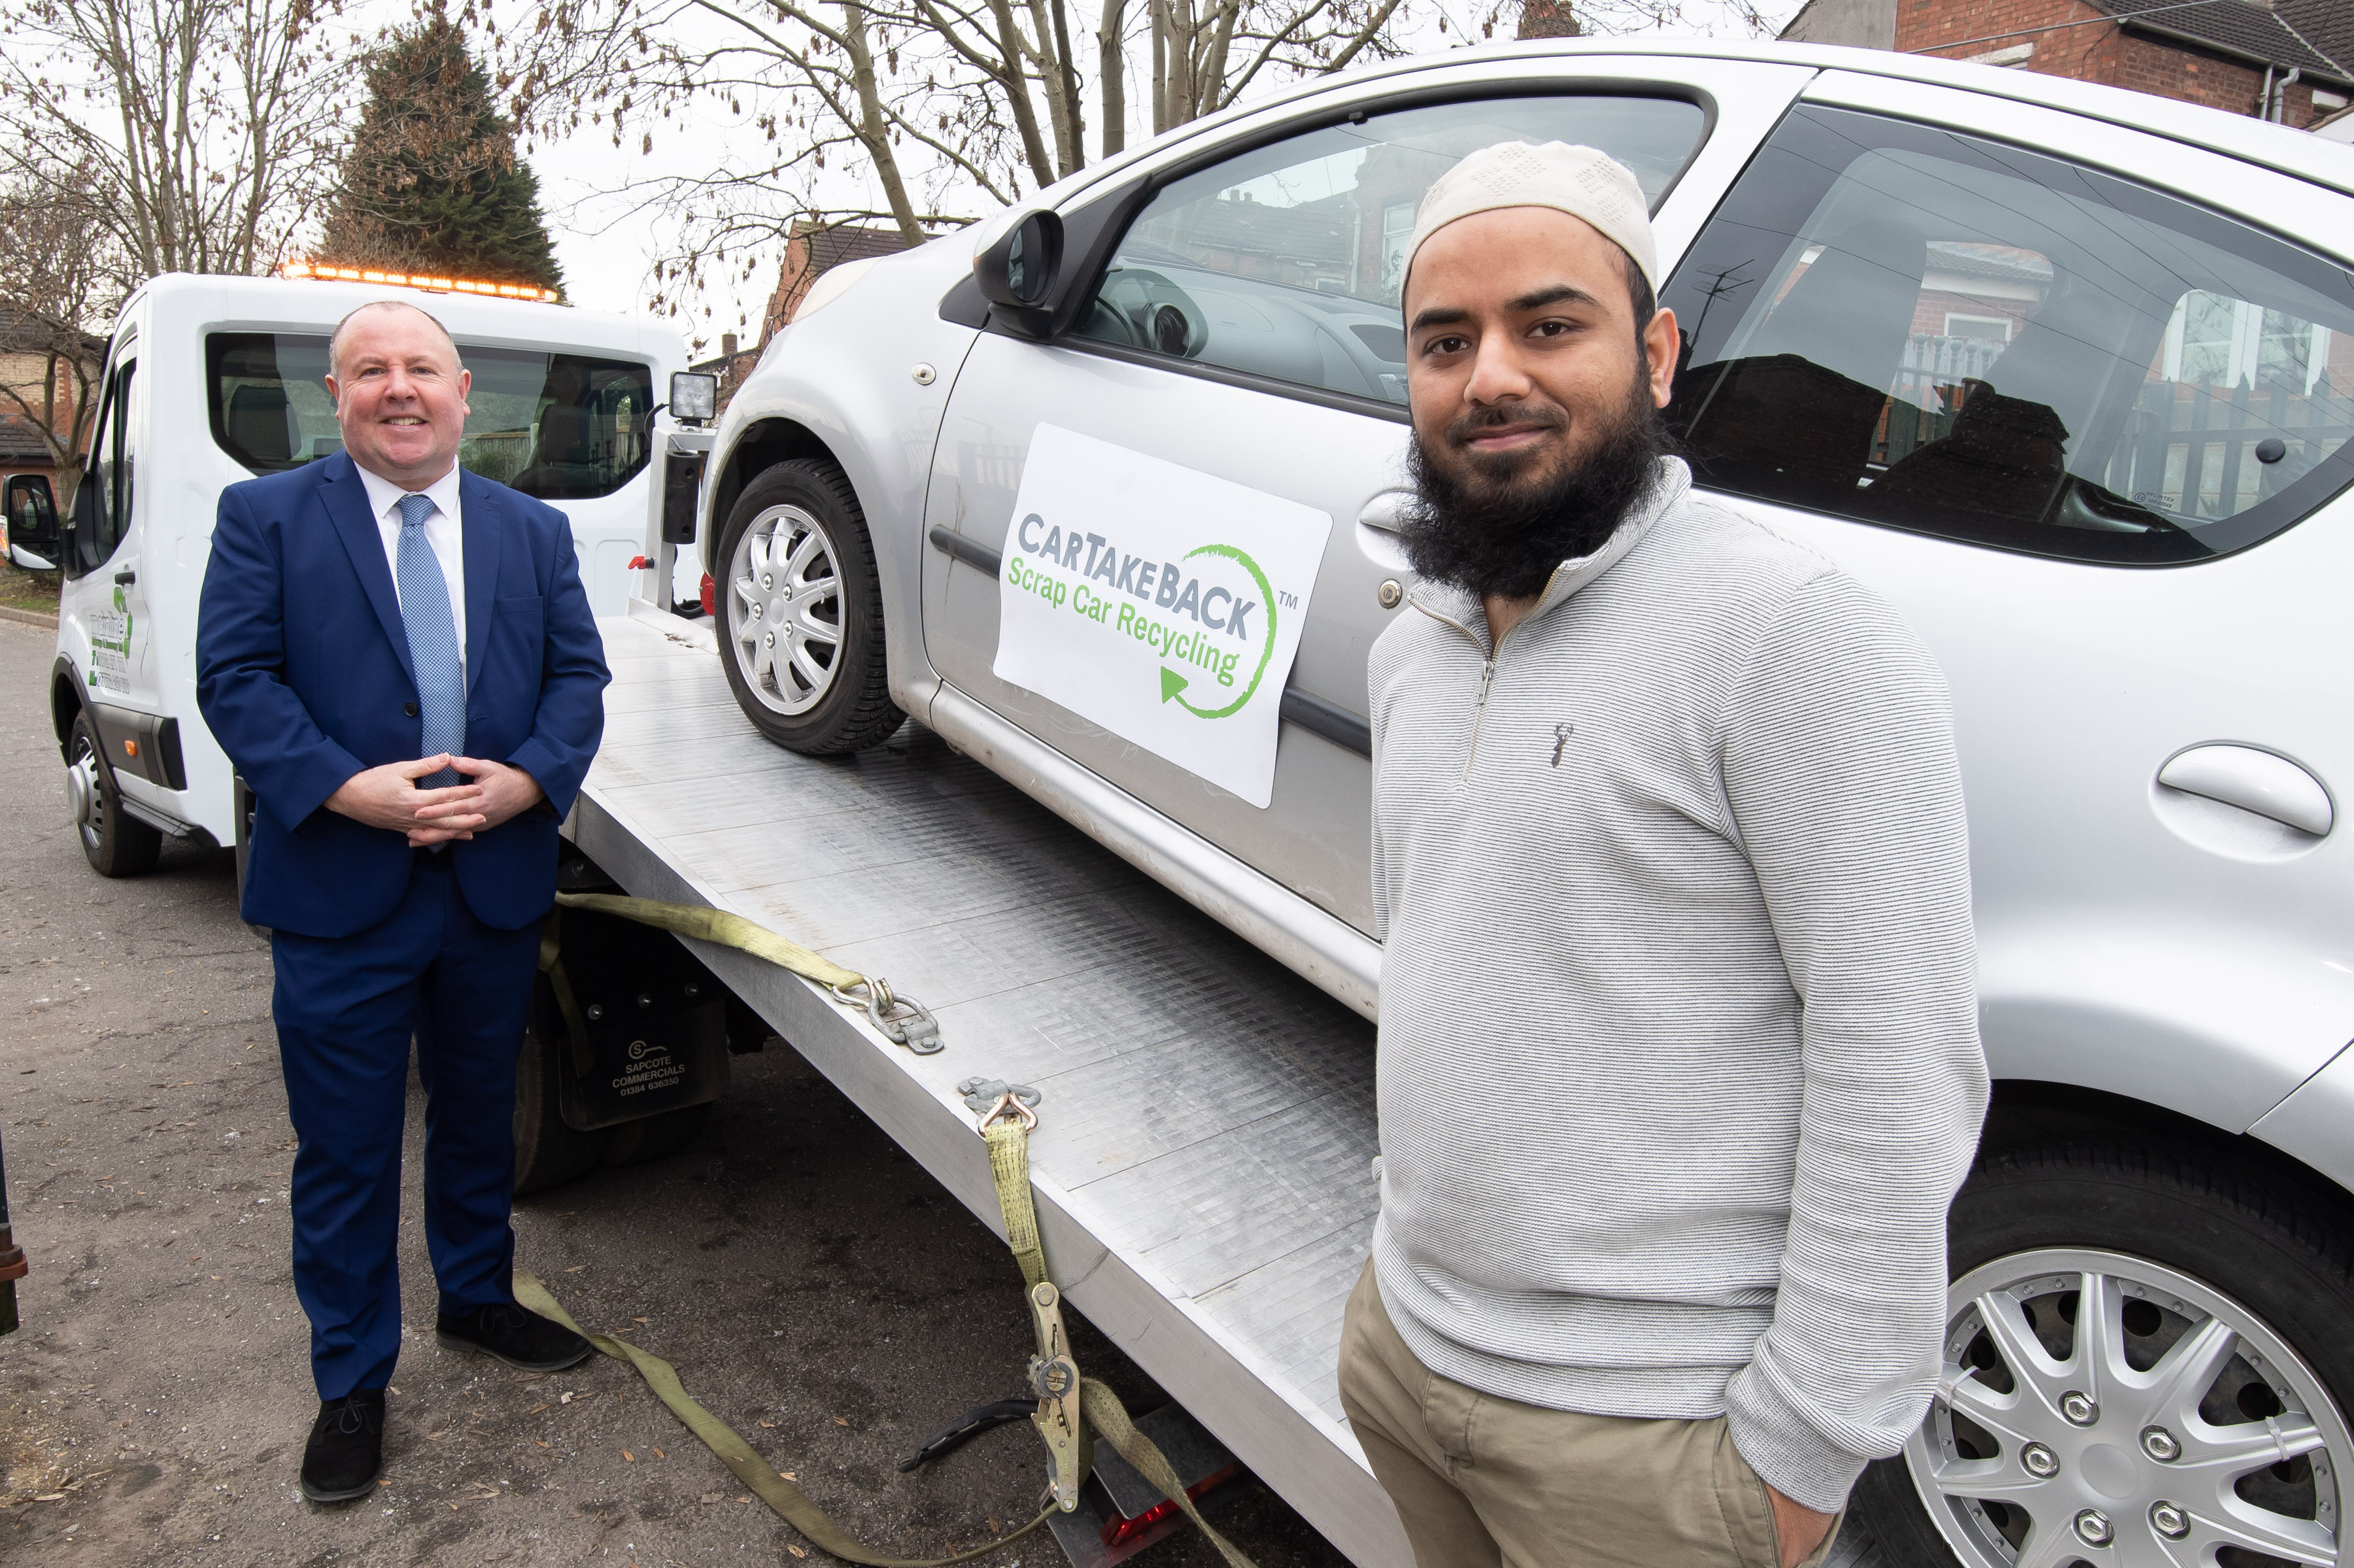 Motorists have their old polluting cars crushed in exchange for £3,000 worth of alternative transport